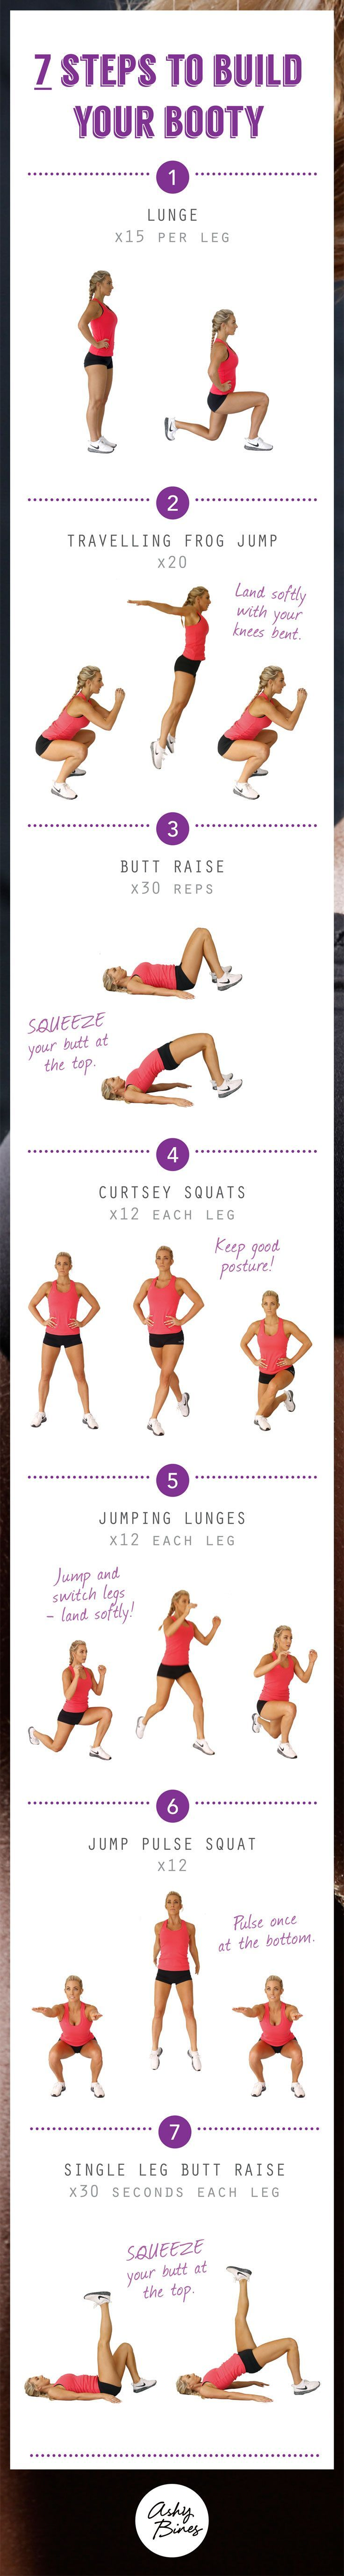 7 steps to build your booty!